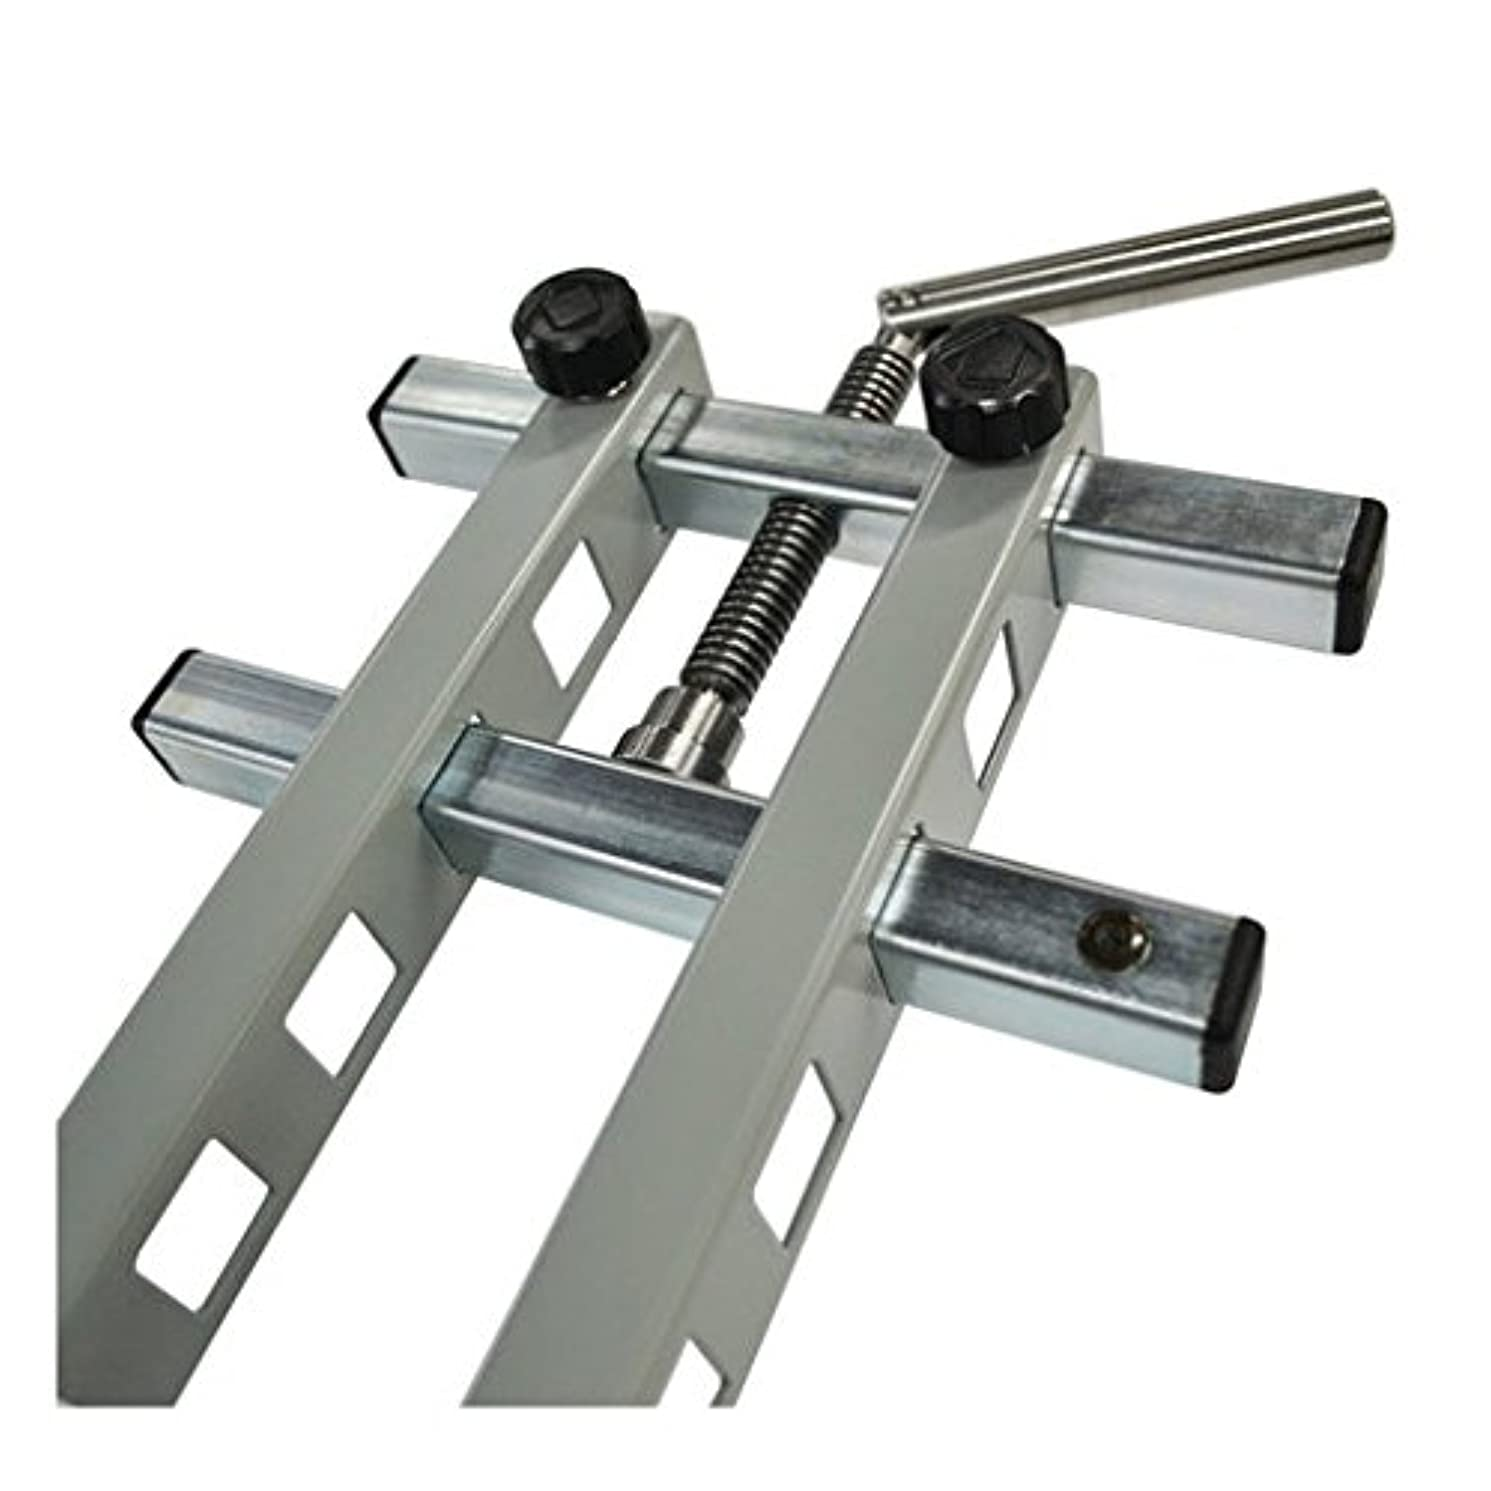 Set of Two (2) DAMSTOM Professional Woodworking Panel Clamps for Flat Panel Gluing -- GRAY